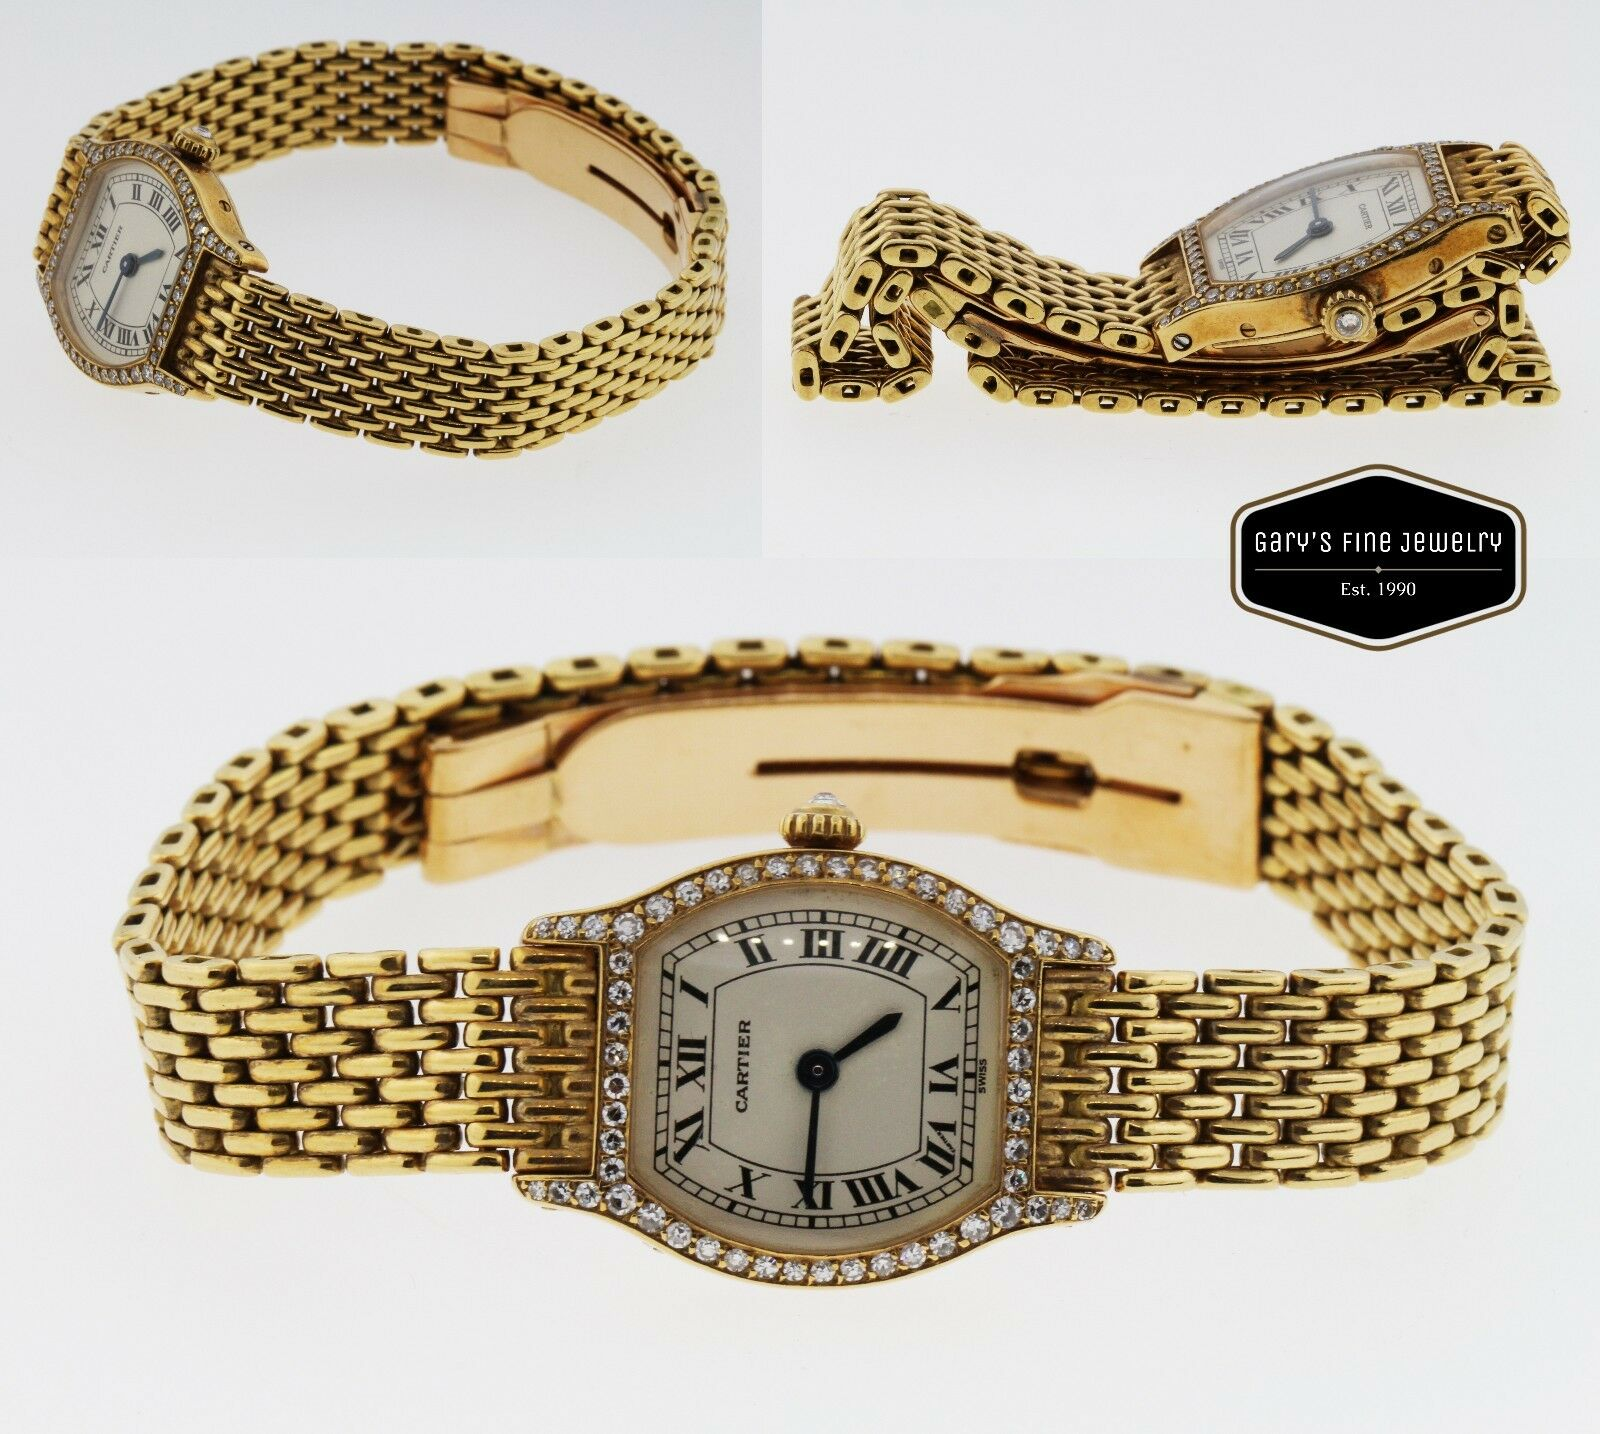 Cartier Tortue Paris 18K Yellow Gold & Diamond Ladies' Watch 156786 26MM - W3433